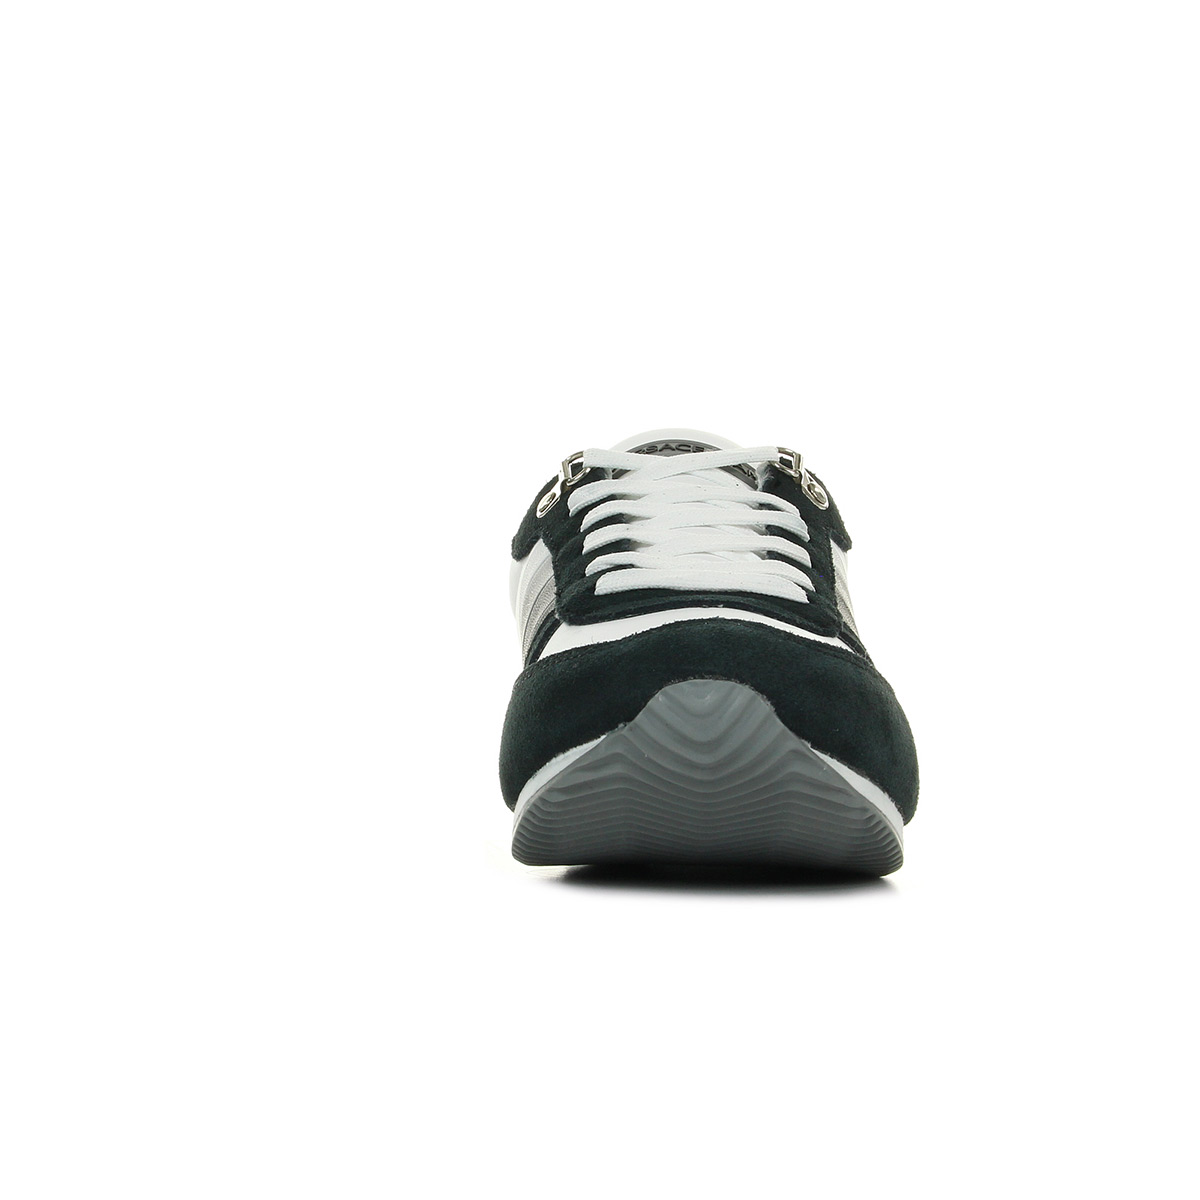 Versace Jeans Linea Fondo Running Dis1 Coated Suede E0YRBSA170013MHU, Baskets mode homme